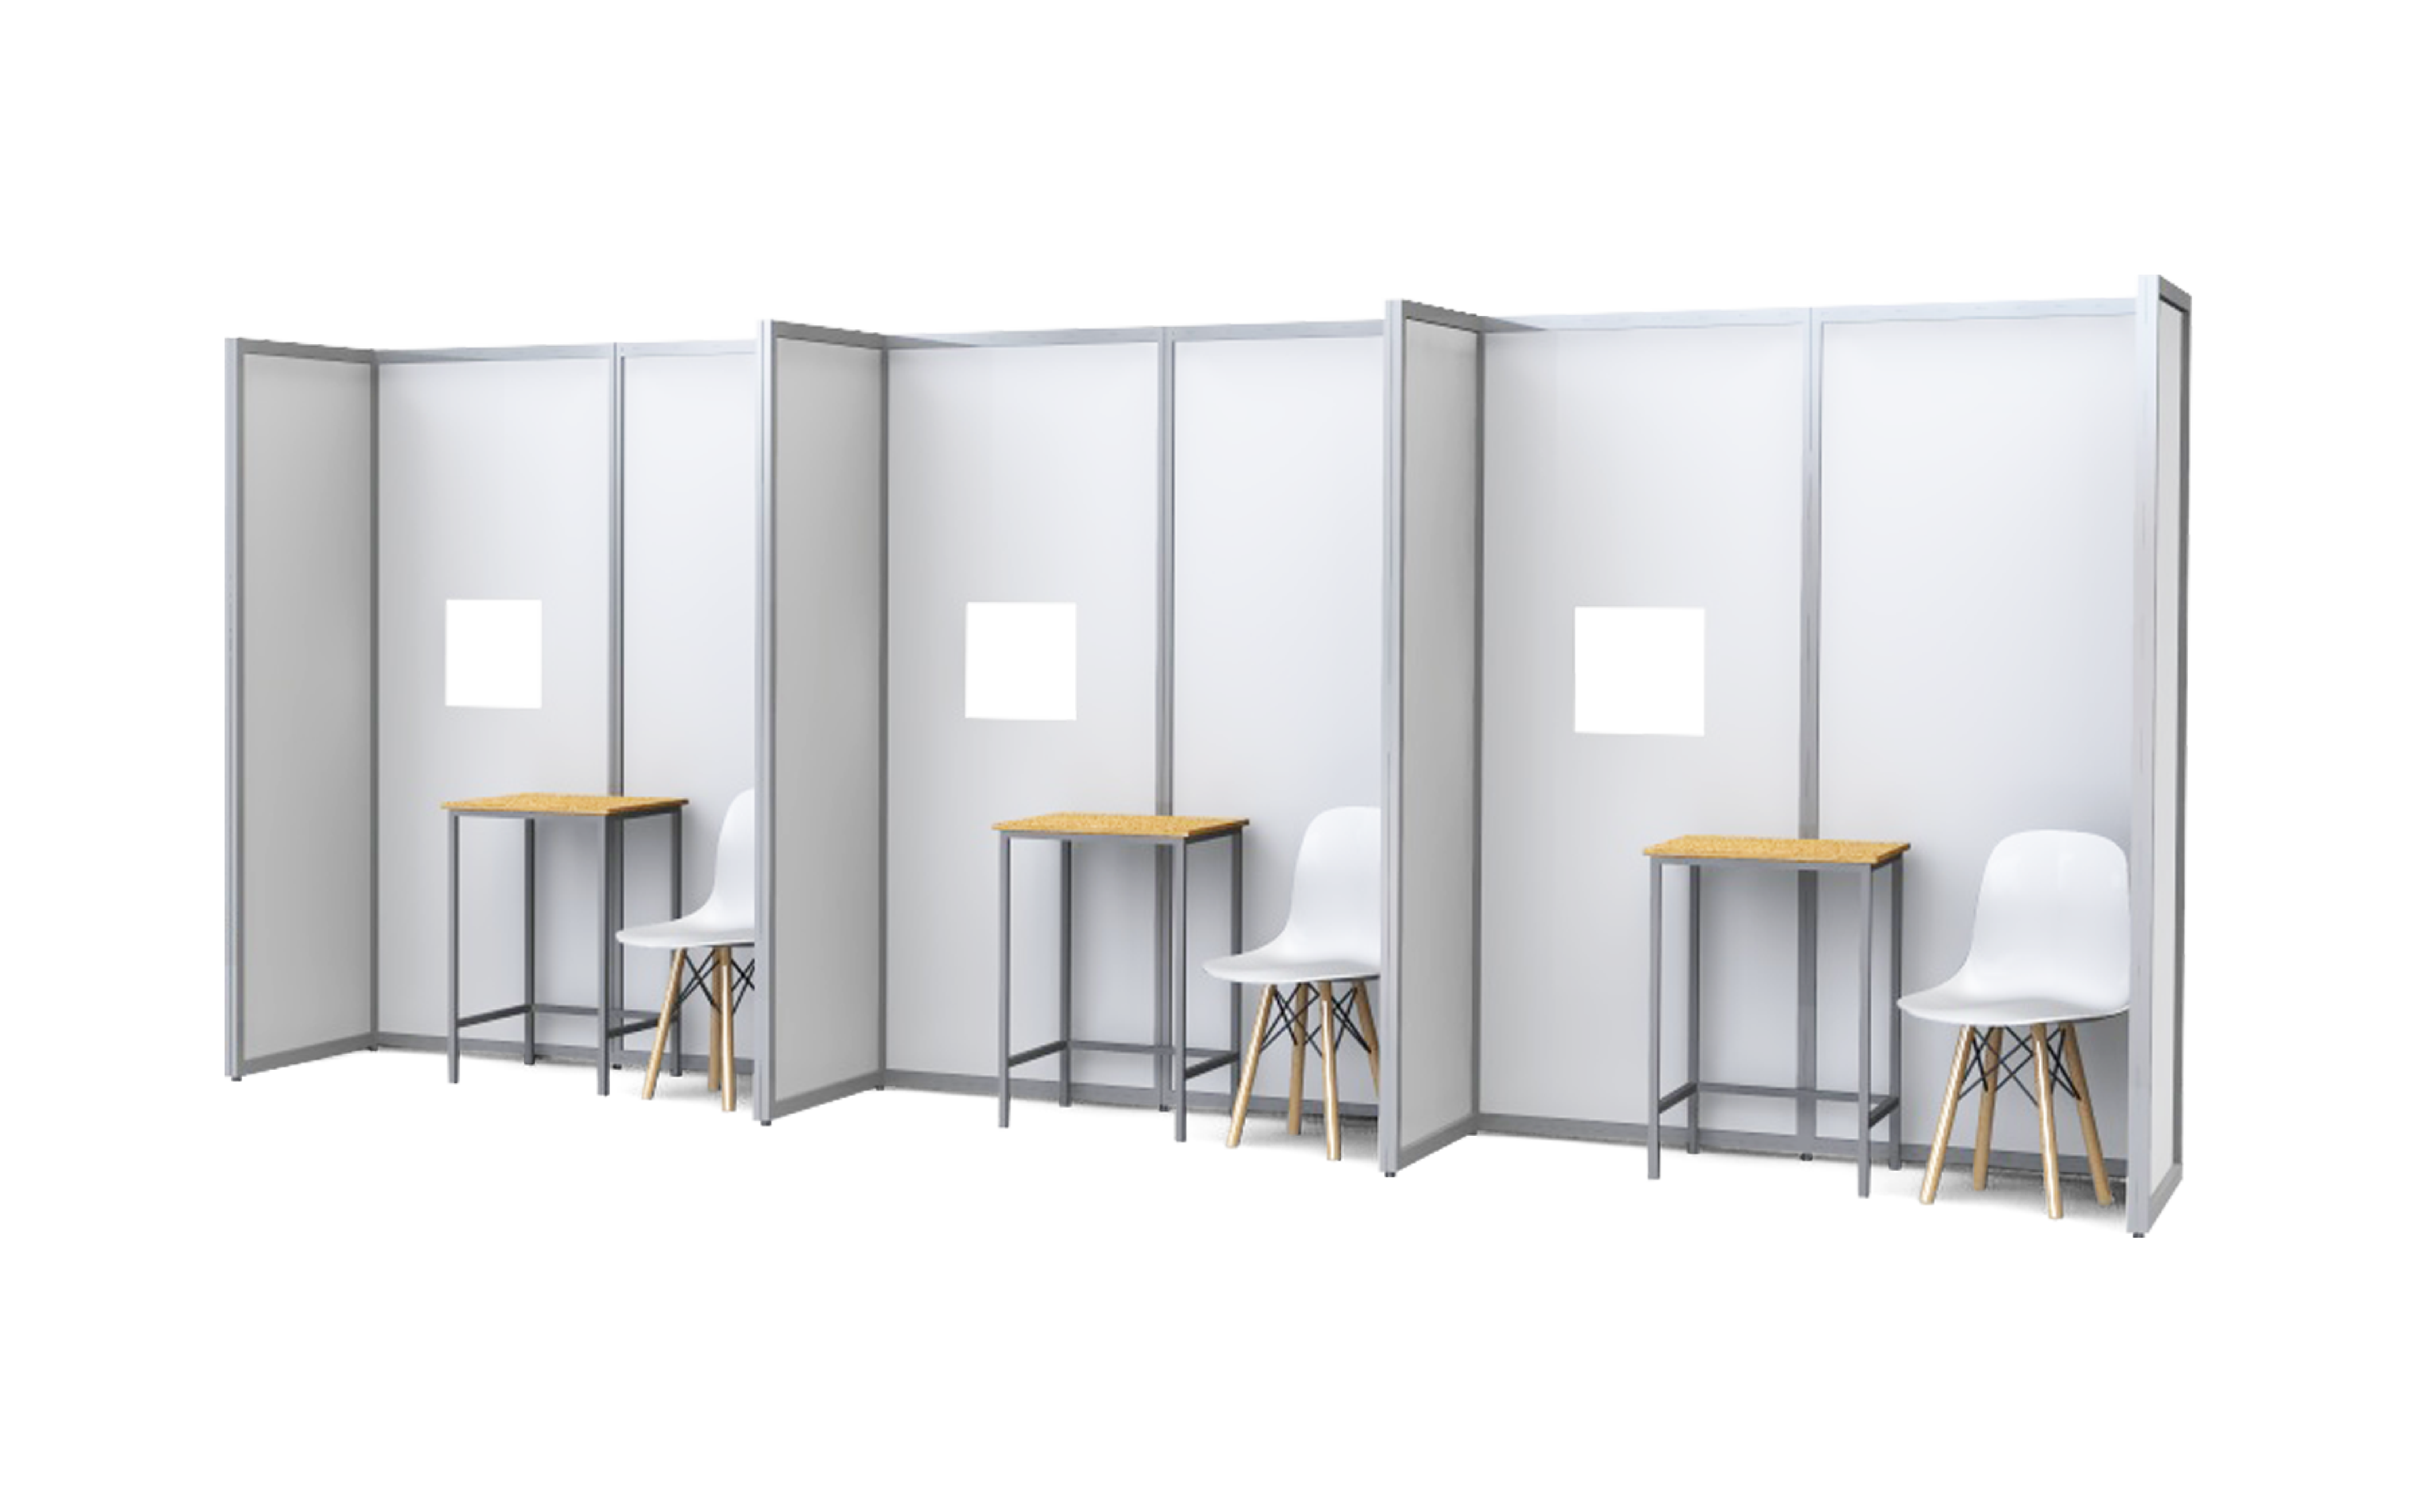 ISOframe Covid Testing Booths